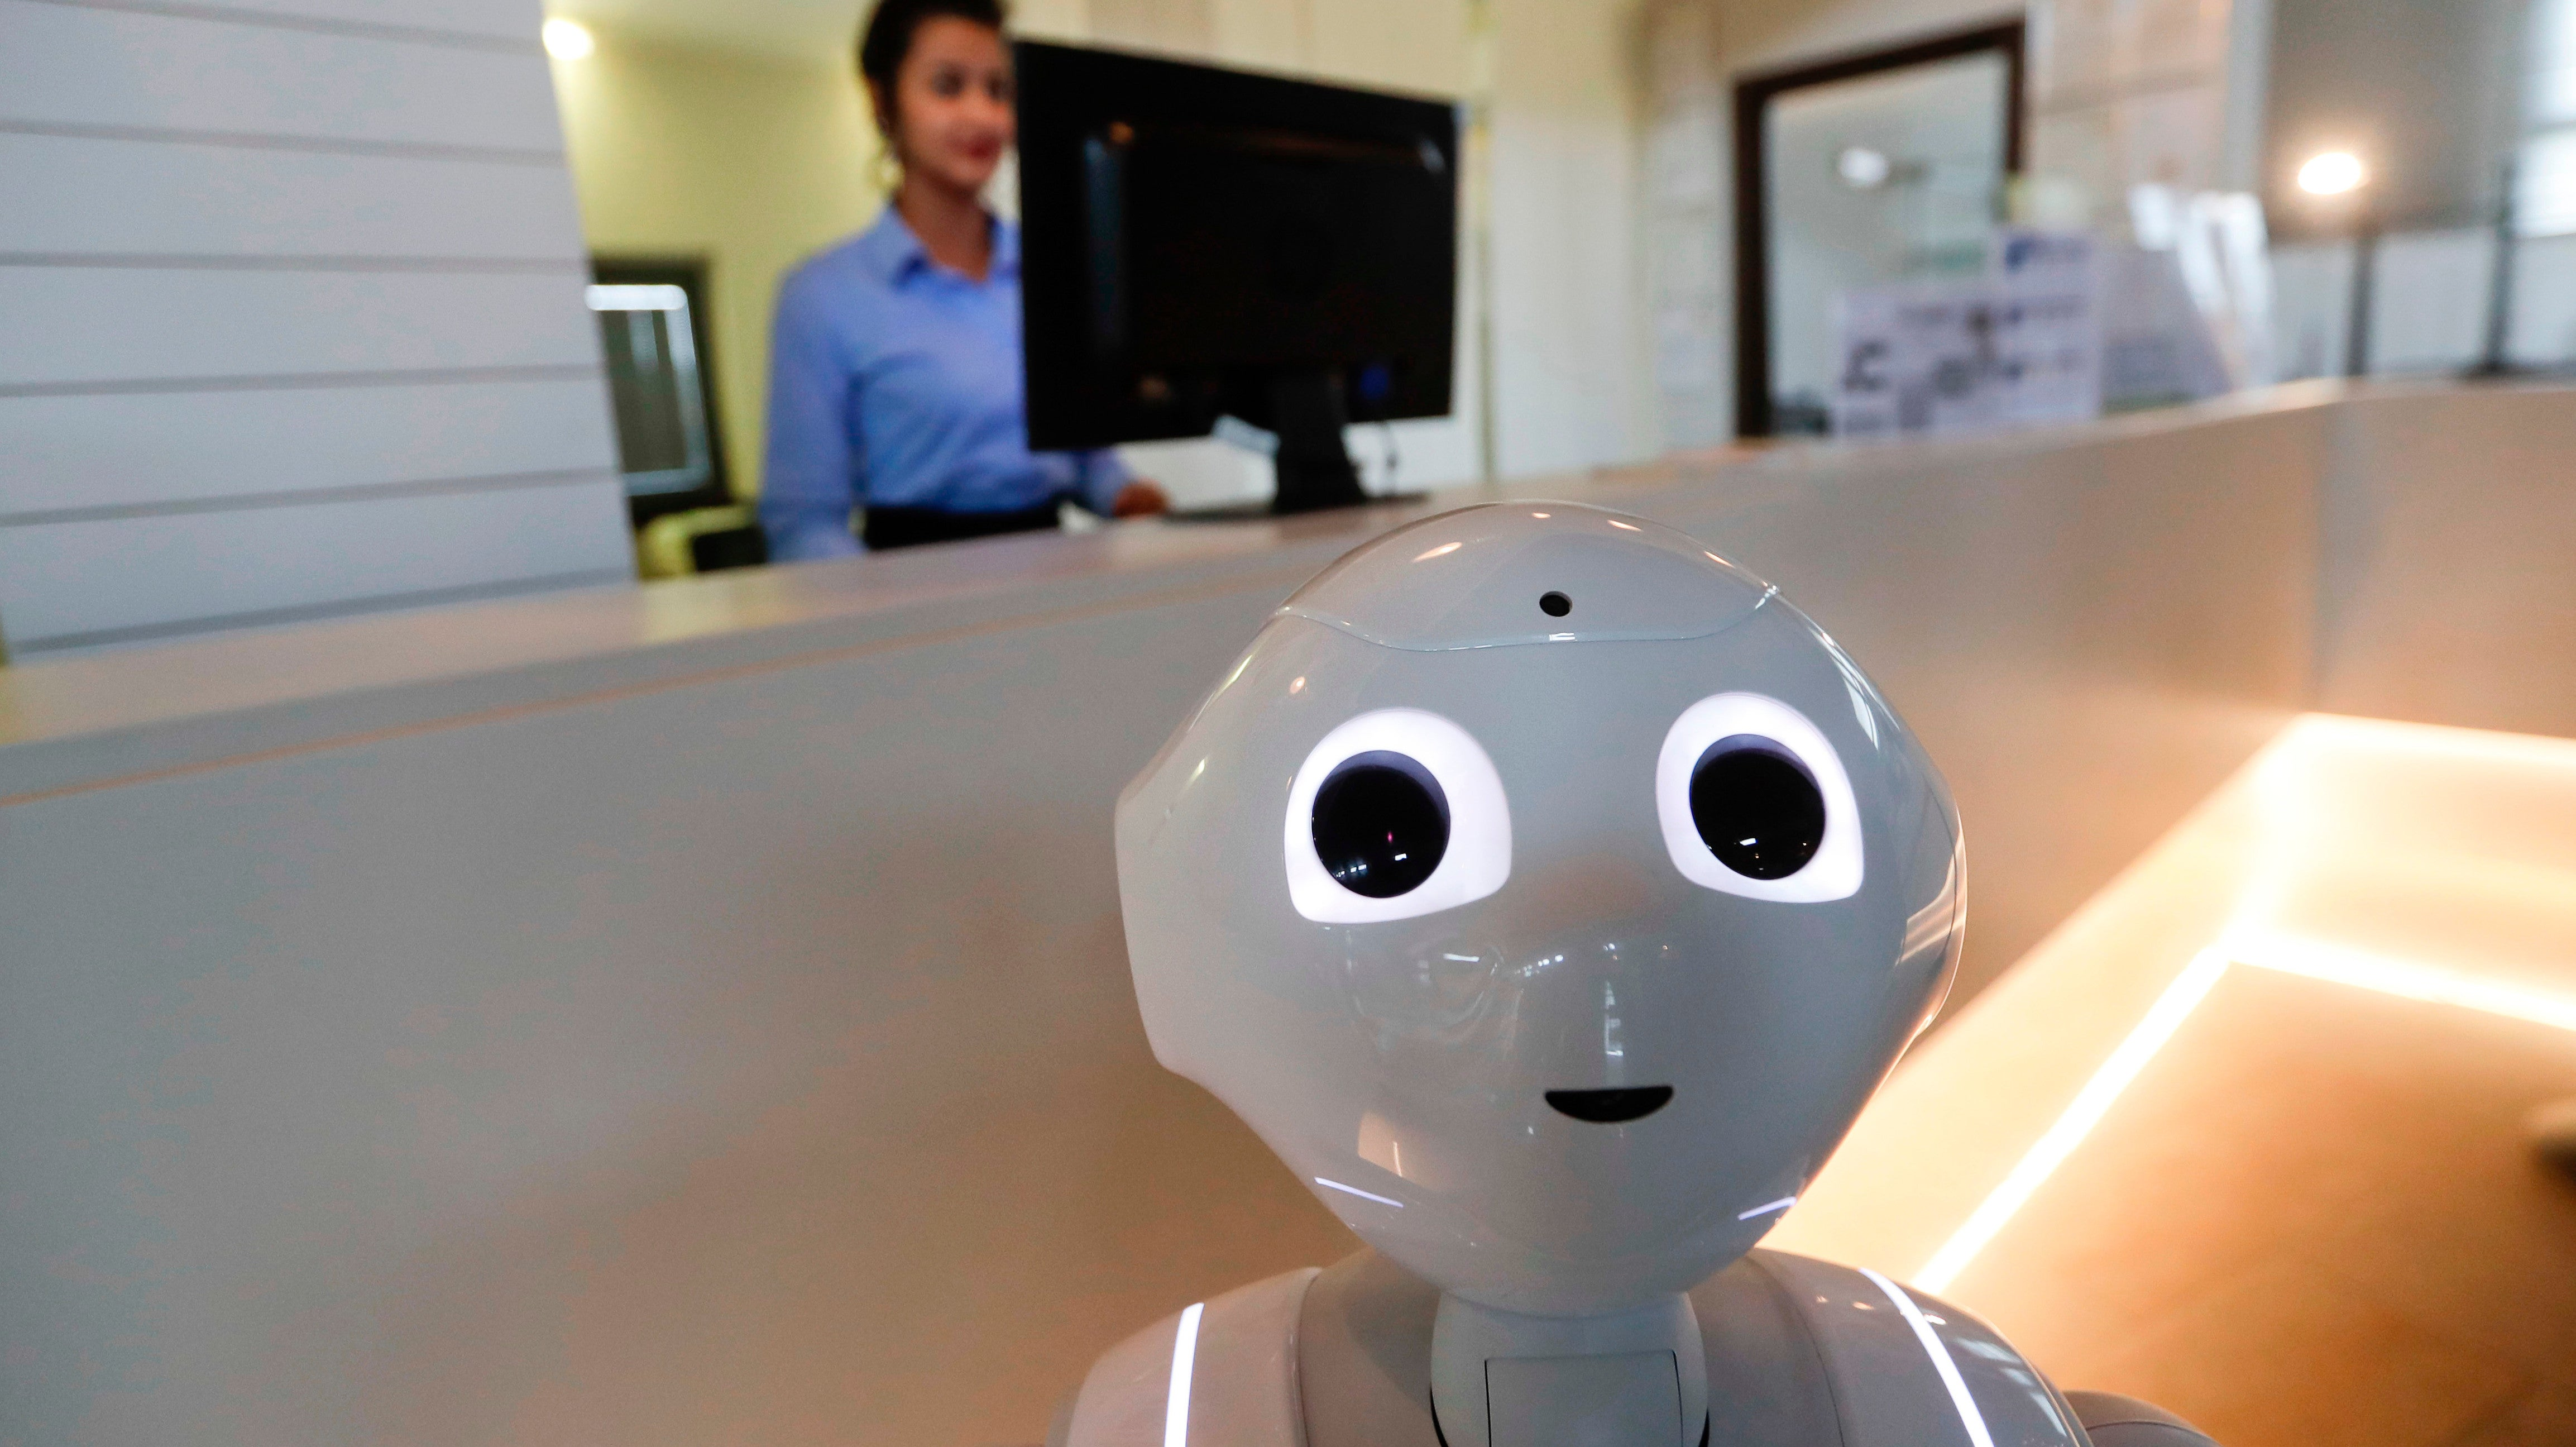 The Robots Are Coming For Our Jobs, Seller Of Automation Equipment Says